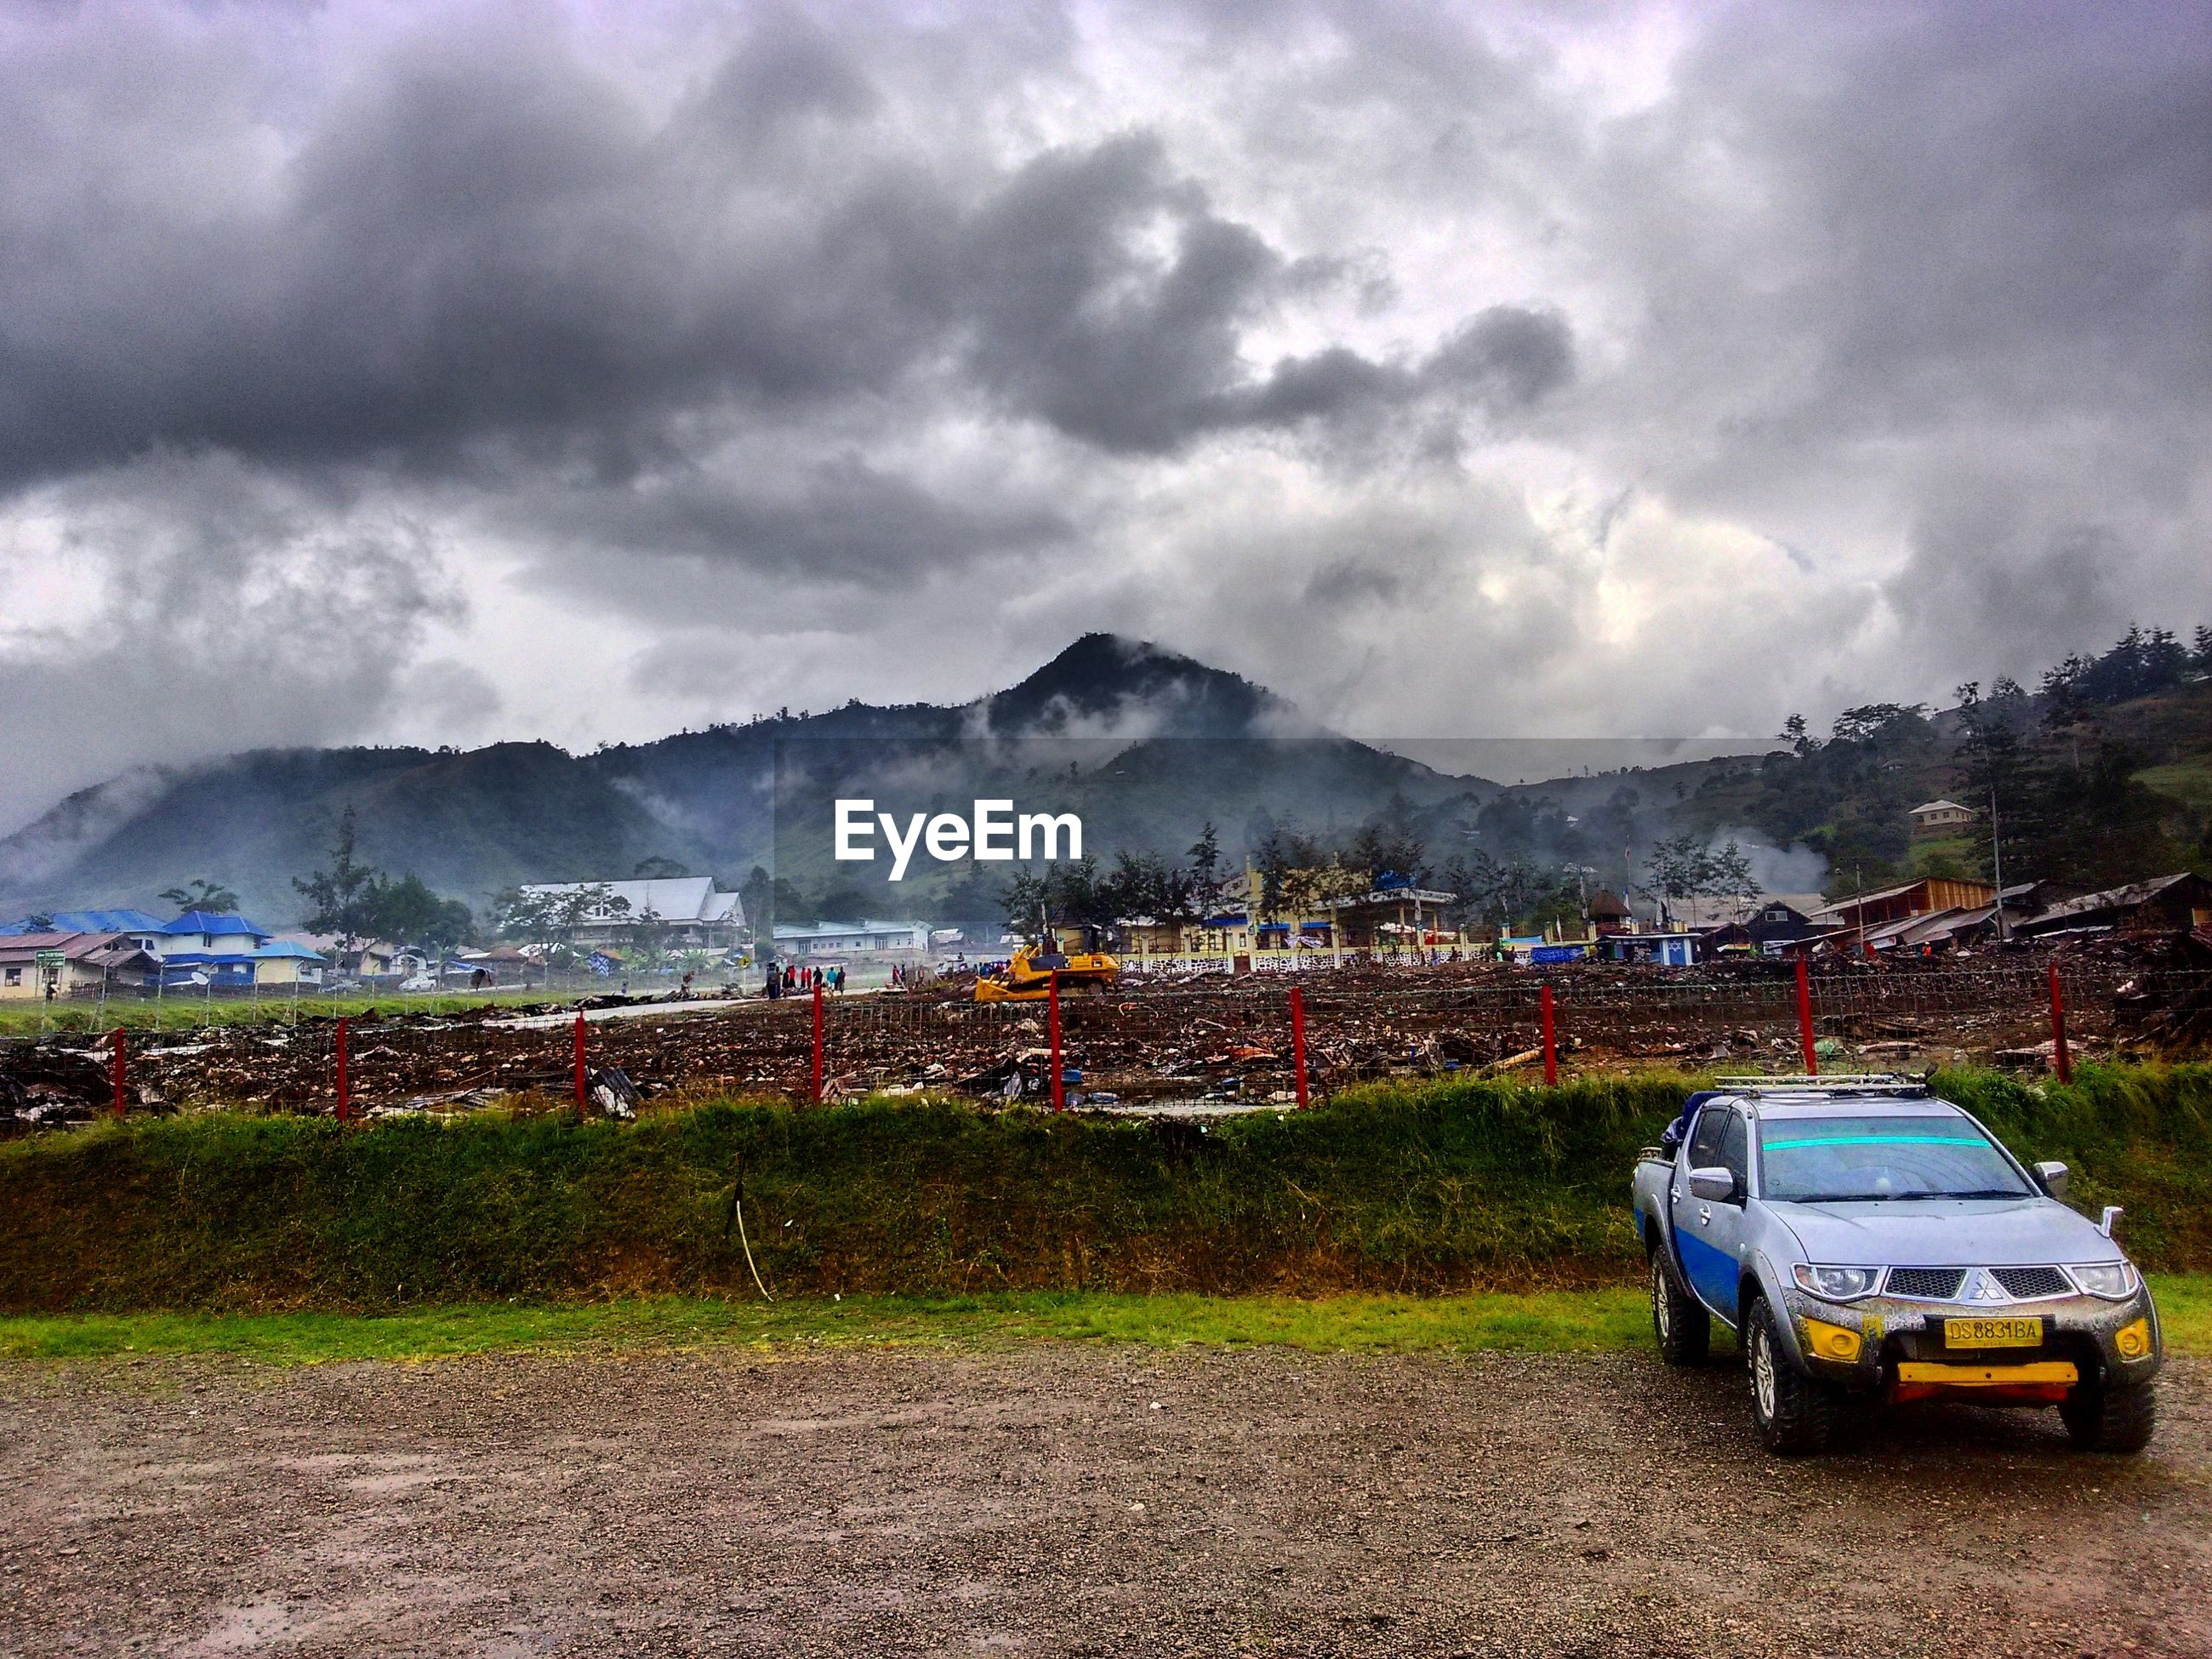 CAR ON FIELD AGAINST MOUNTAINS